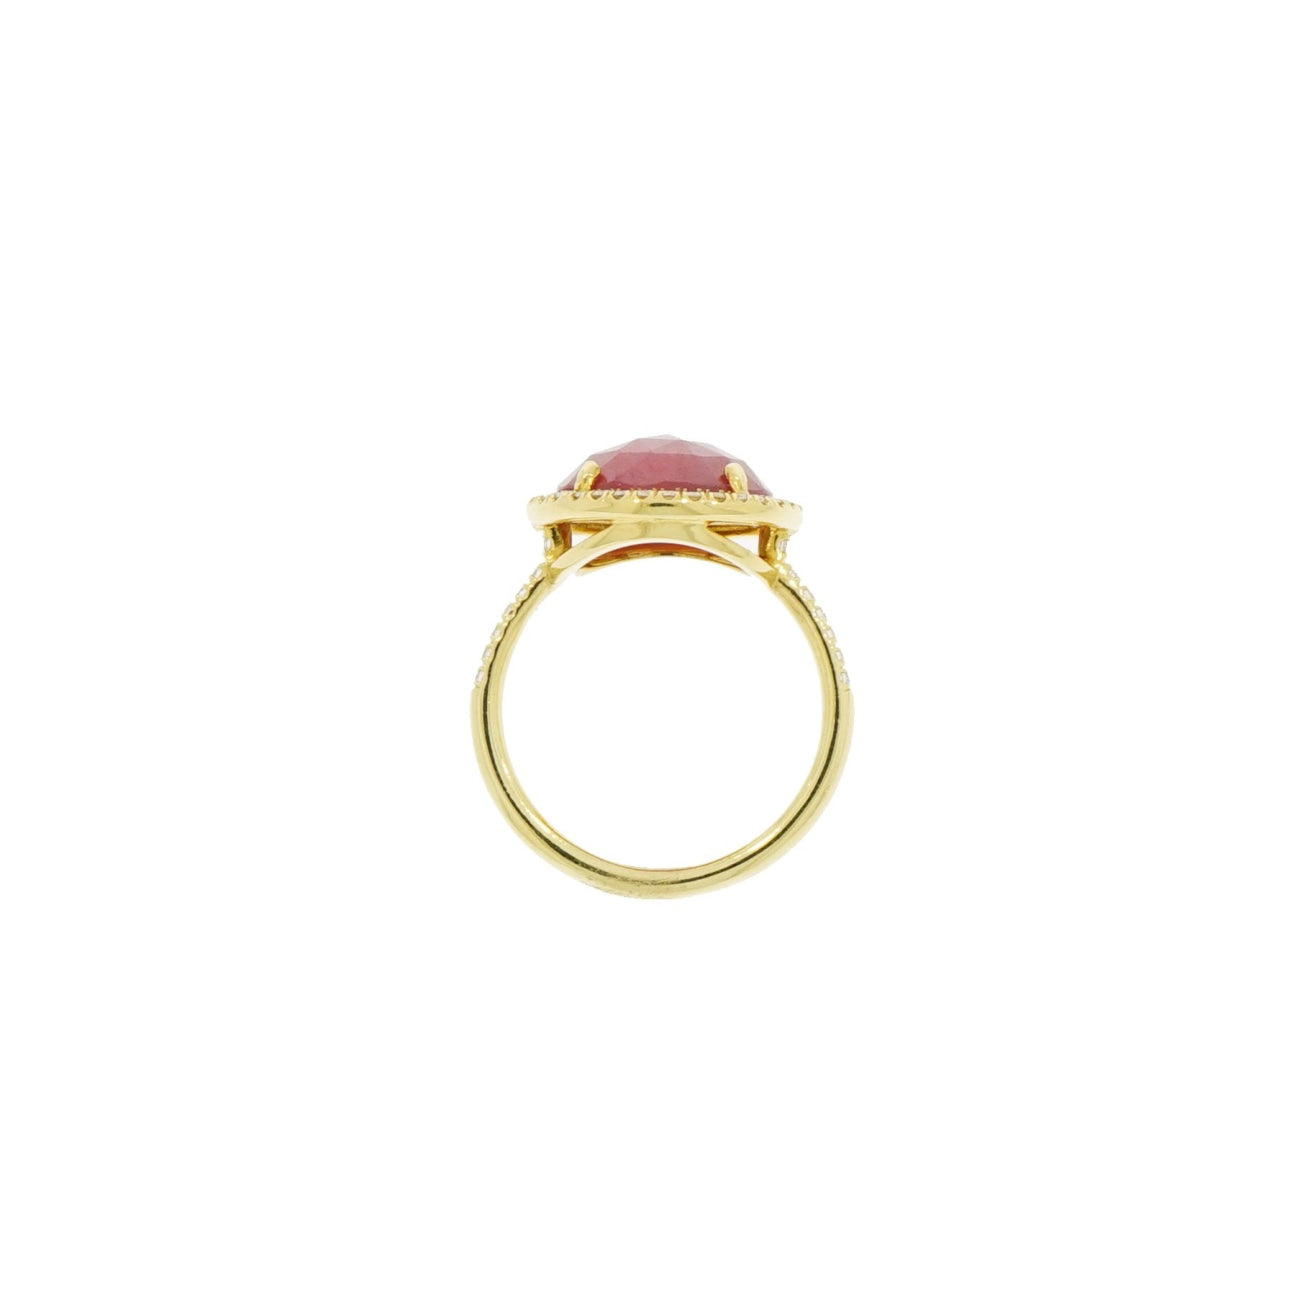 Lauren K Jewelry - Round Pink Sapphire & Diamond Yellow Gold Ring | Manfredi Jewels